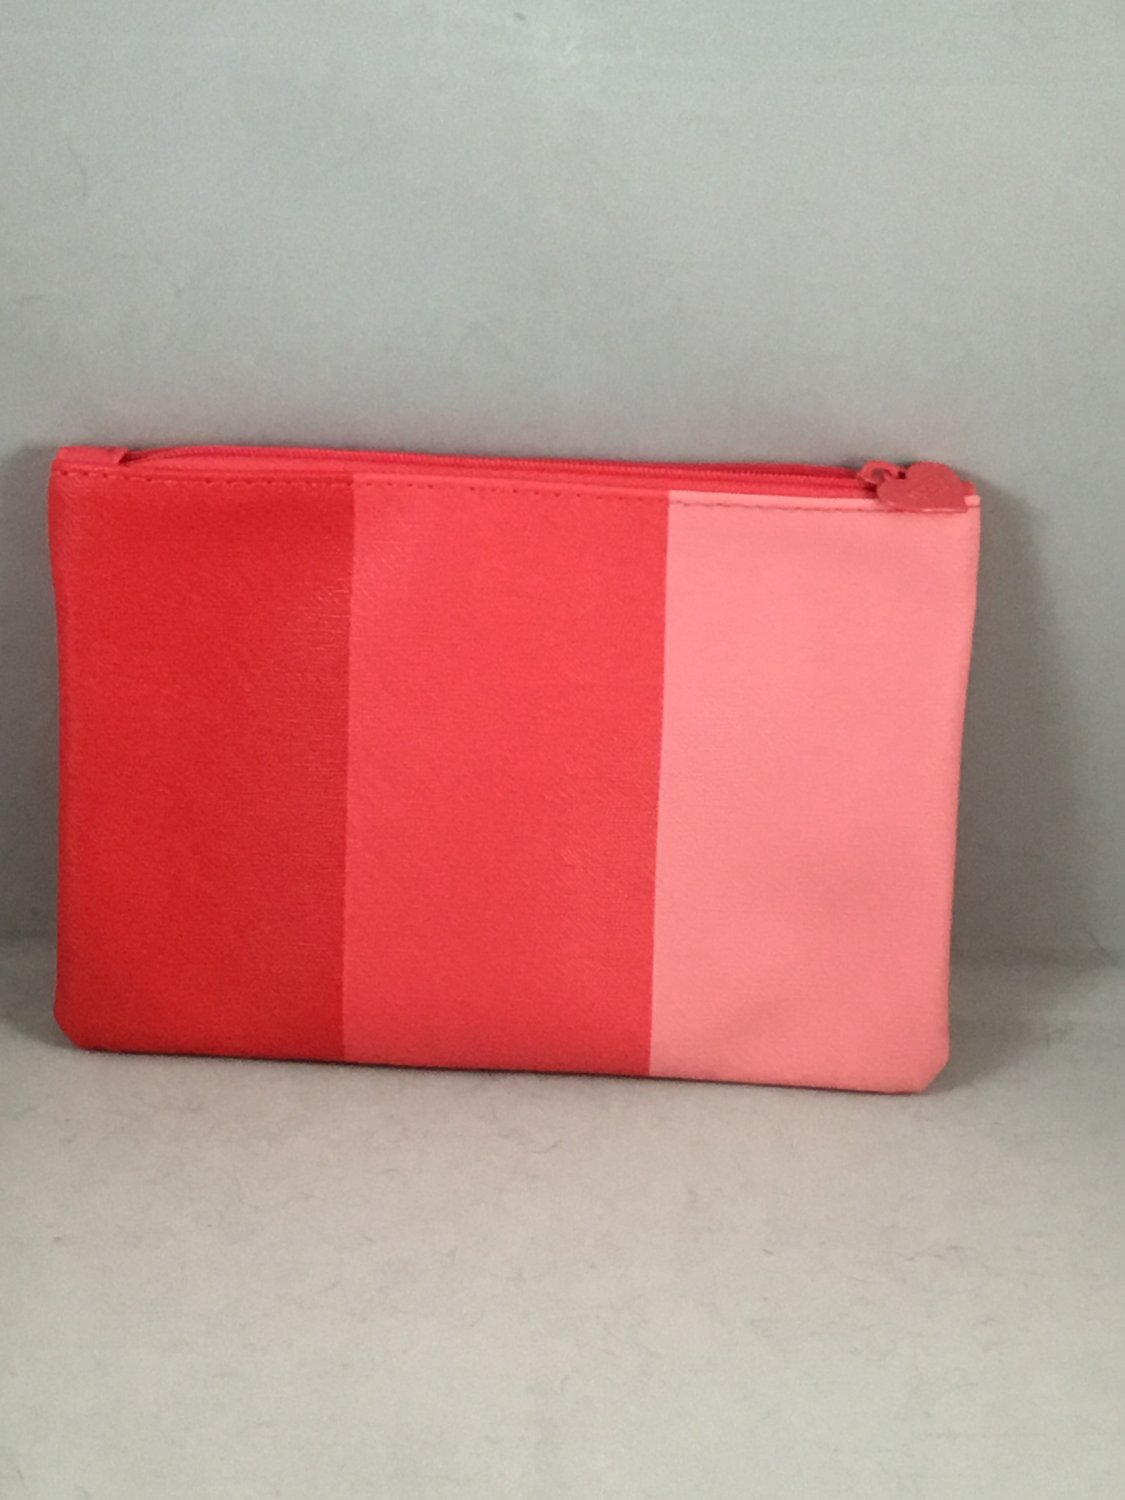 Ipsy MyGlam Glam Bag June 2018 Flying Colors Cosmetic case purse Pink